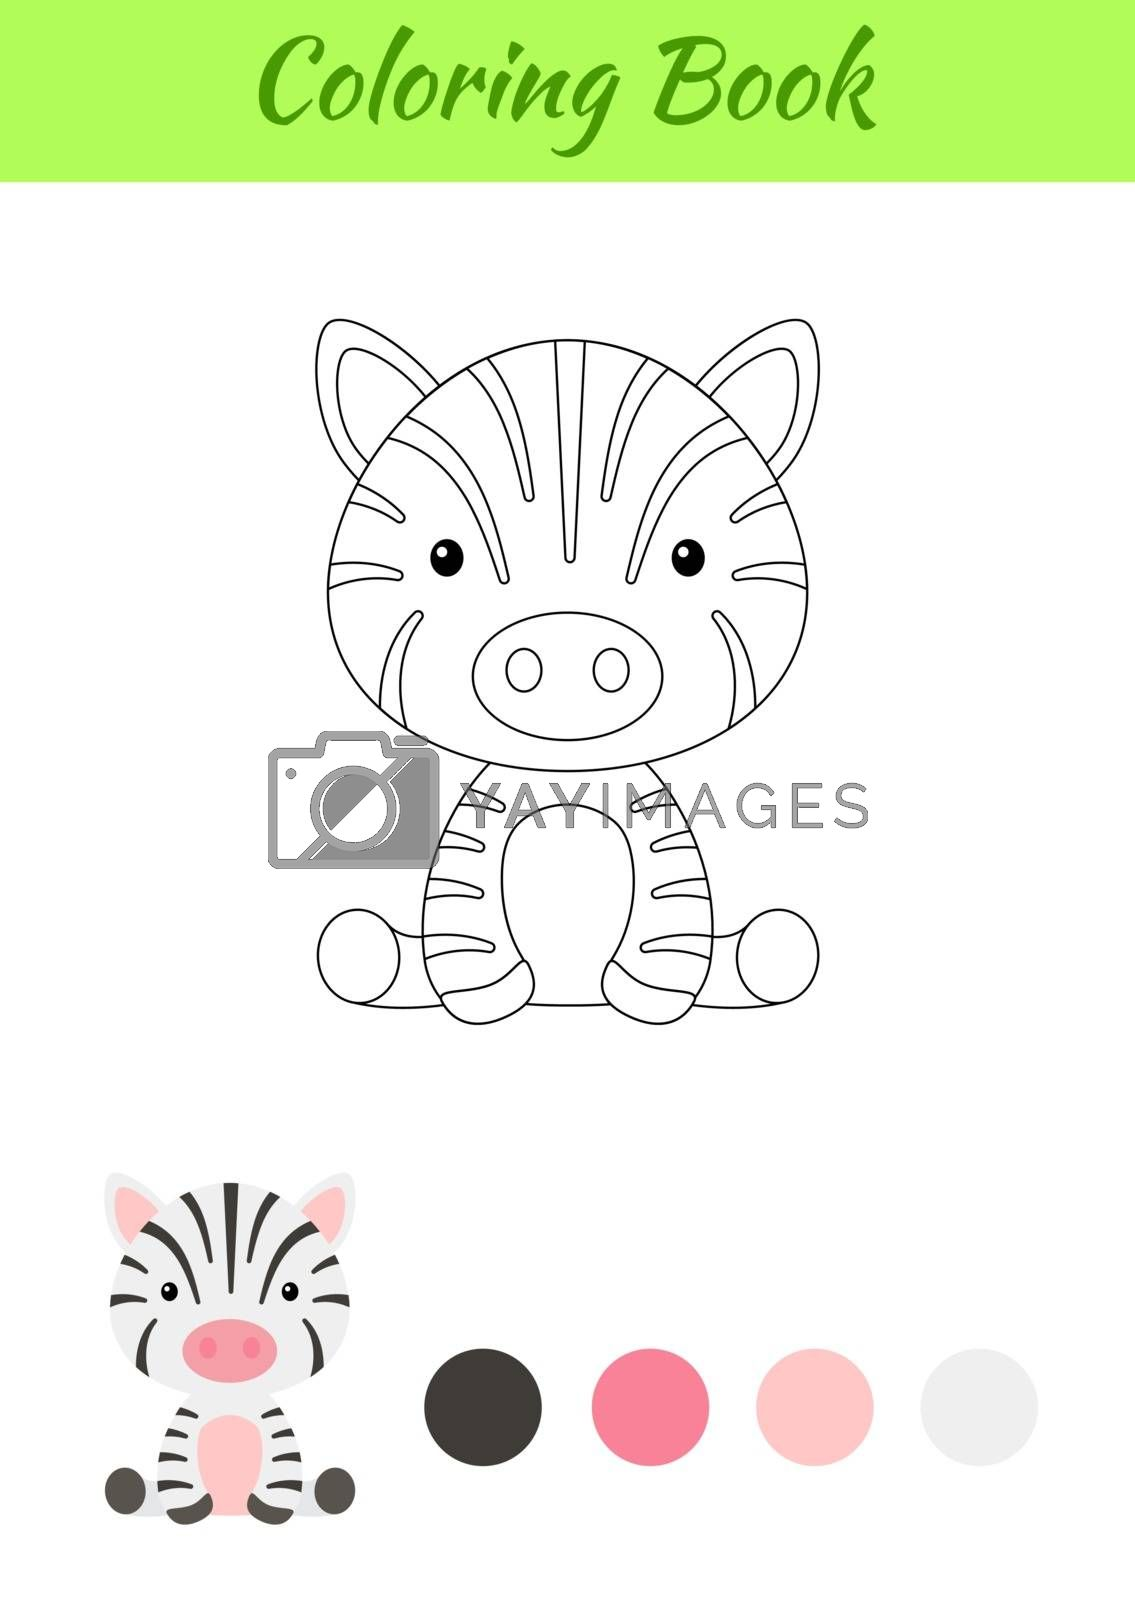 Coloring page little sitting baby zebra. Coloring book for kids. Educational activity for preschool years kids and toddlers with cute animal. Flat cartoon colorful vector stock illustration.